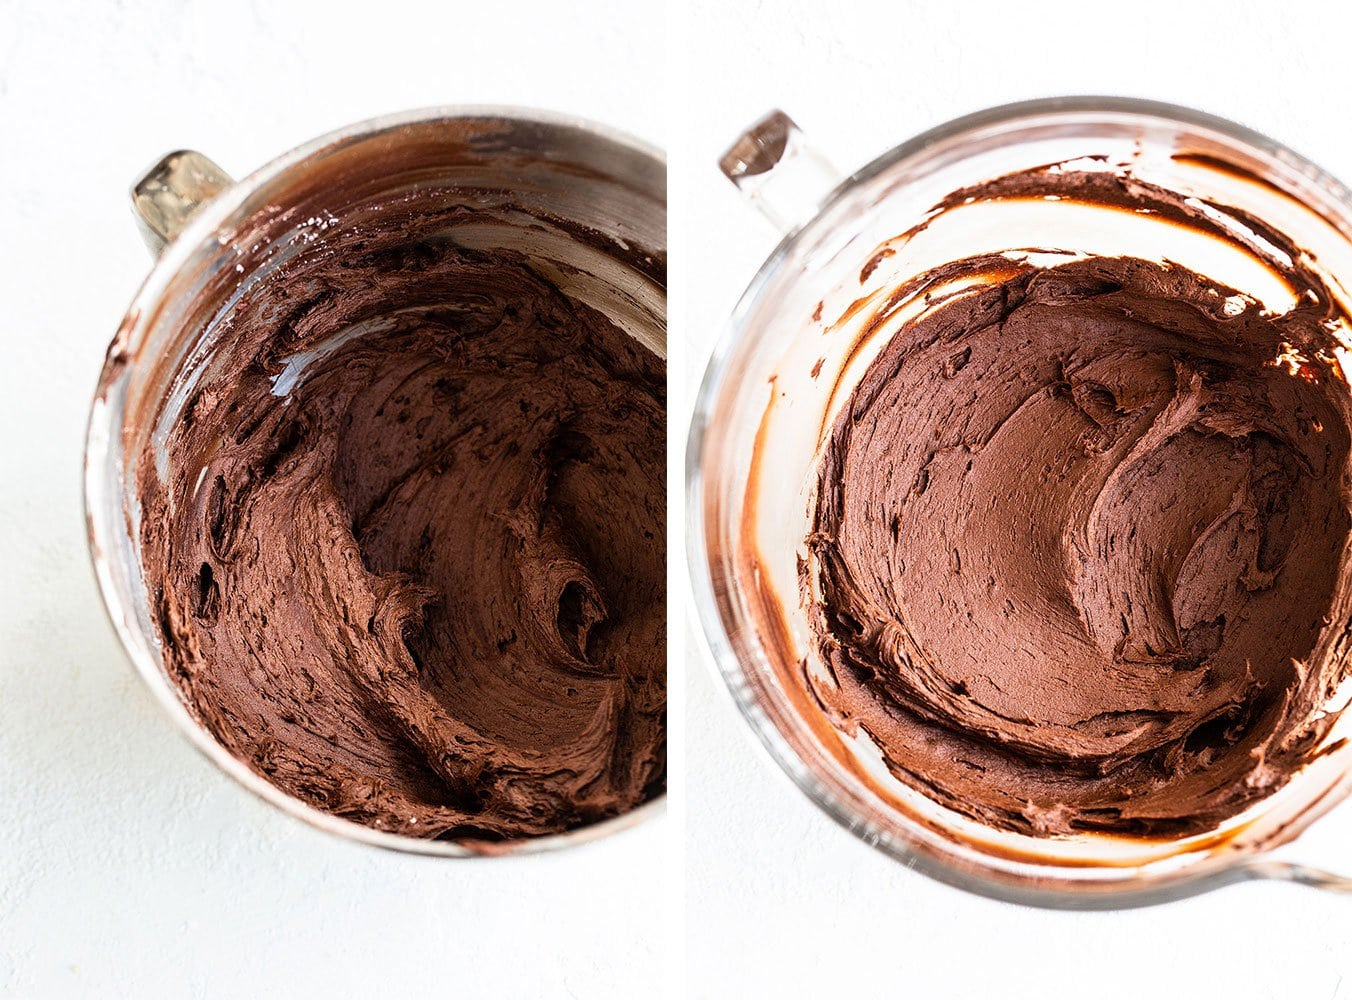 Collage: image on left shows barely beaten frosting and image on right shows frosting beaten for several minutes